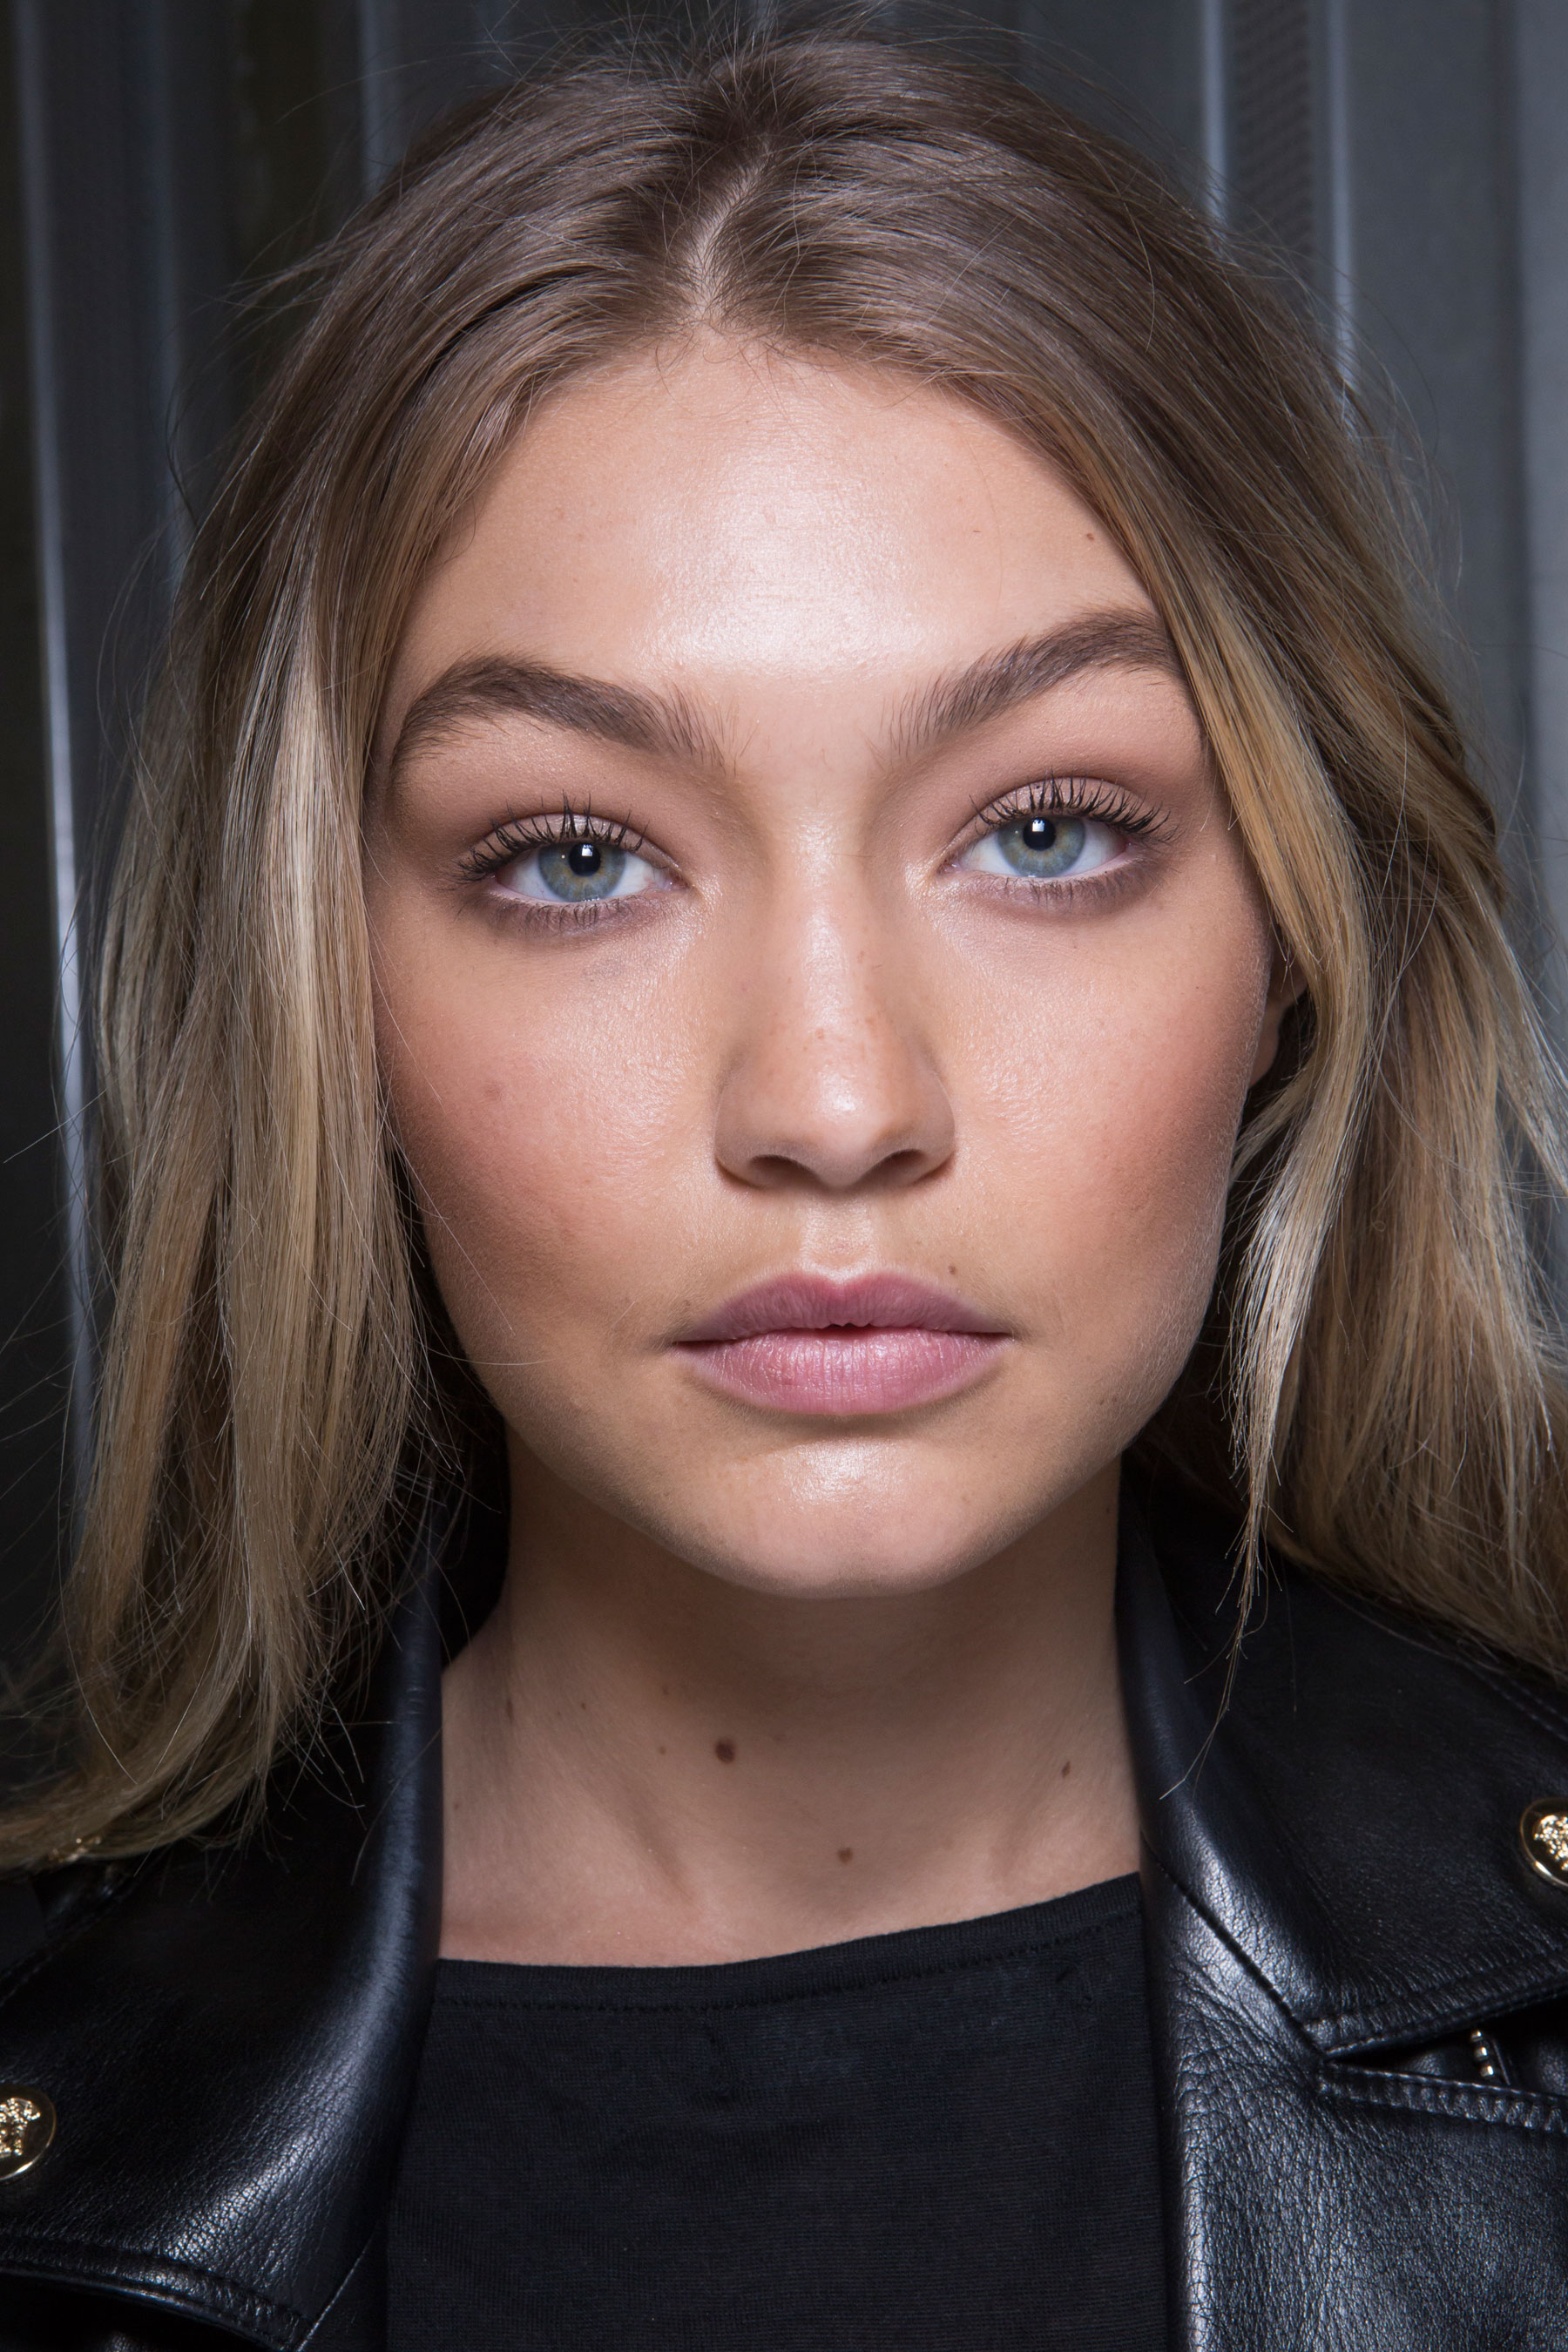 versace-backstage-beauty-spring-2016-fashion-show-the-impression-050